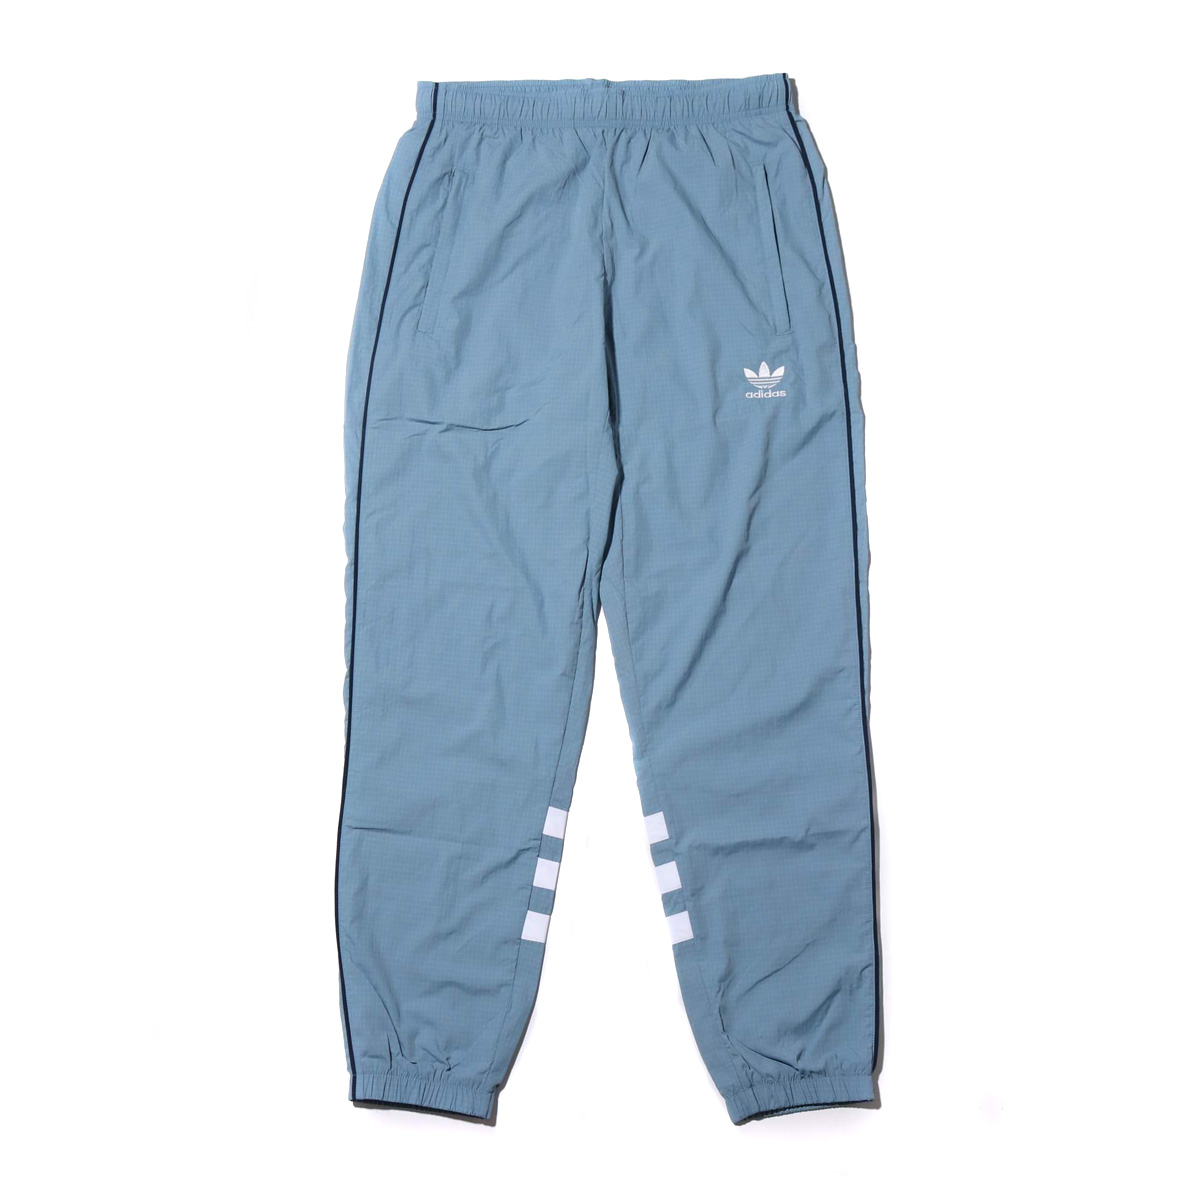 adidas AUTH RIPSTOP TRACK PANTS (Adidas AUTH Lipps top trackpants) low gray S18 18FW I